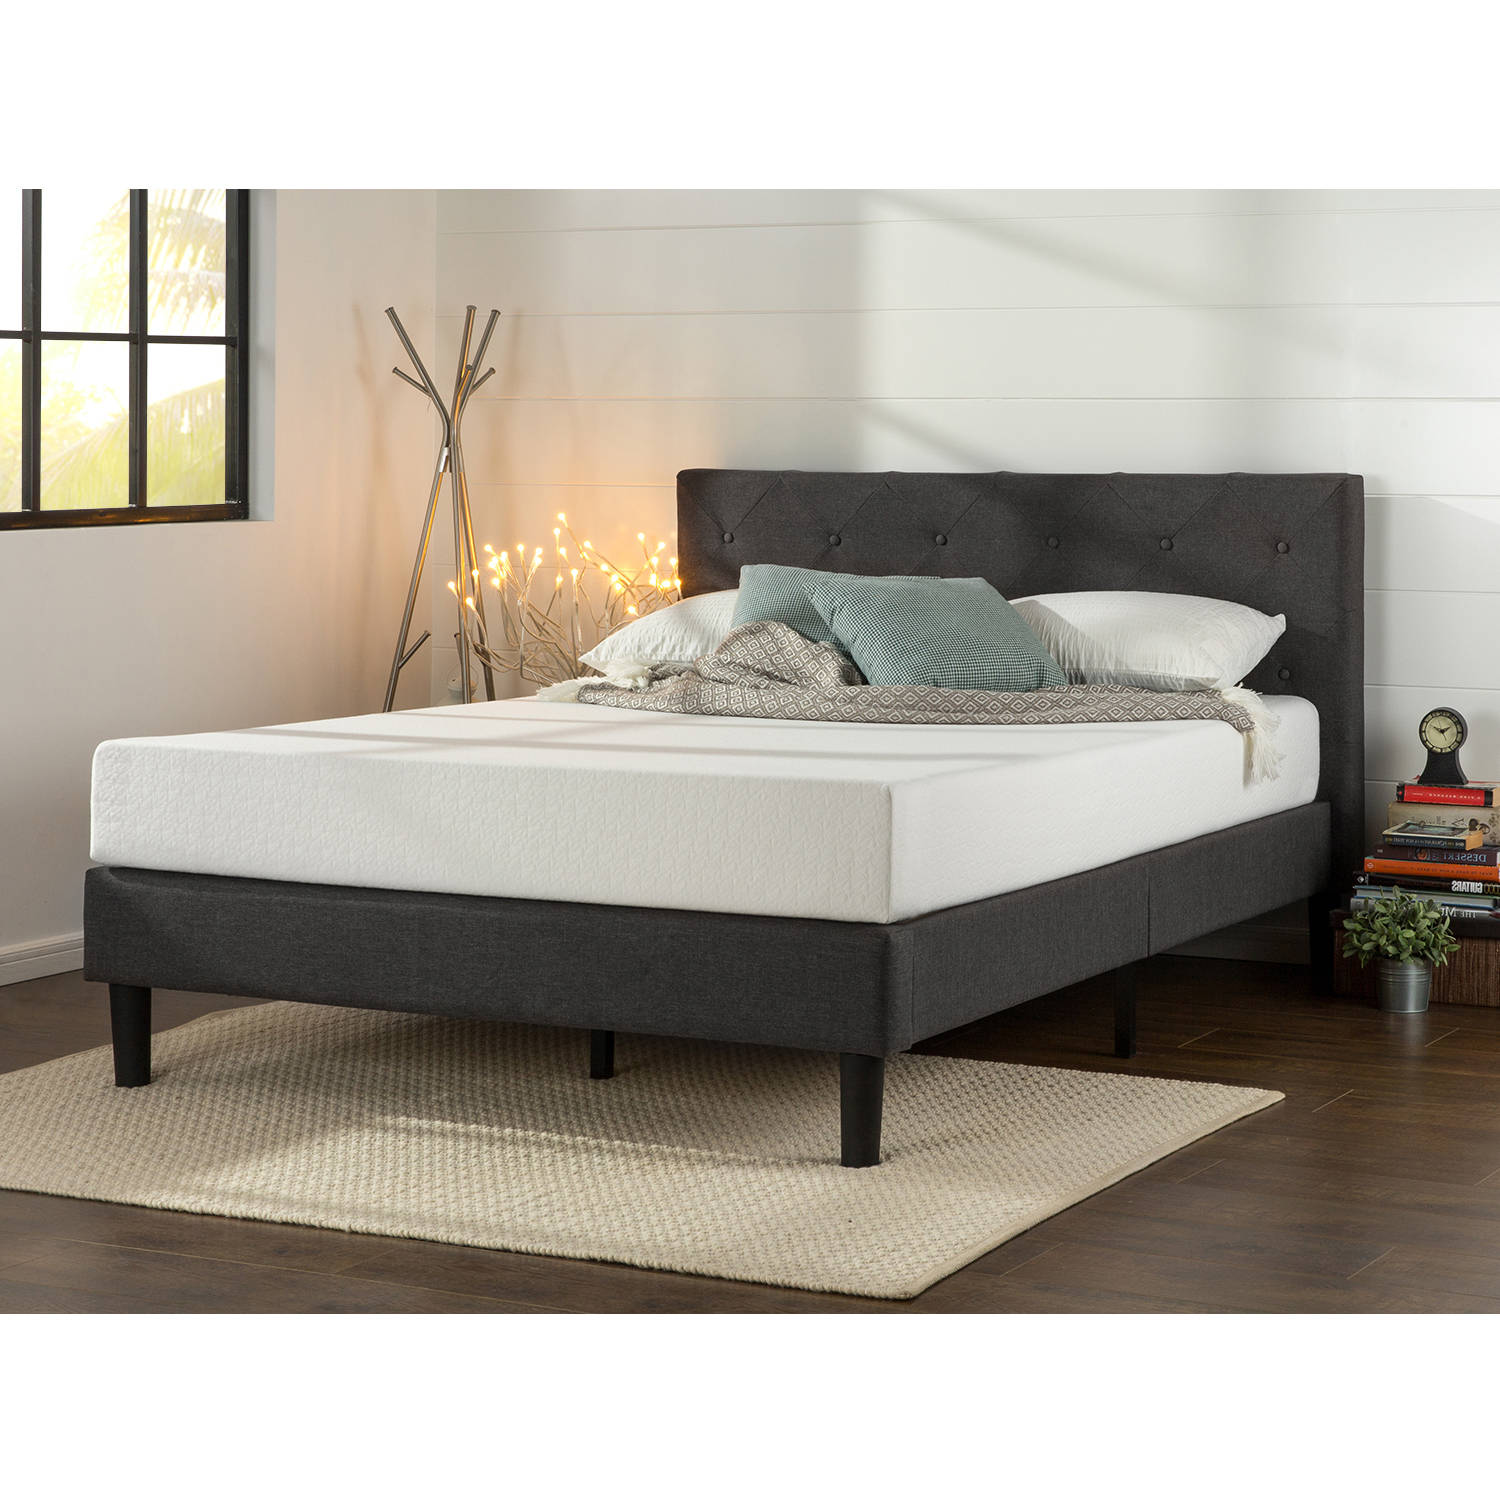 Zinus Upholstered Diamond Stitched Platform Bed with Wooden Slats by ZINUS